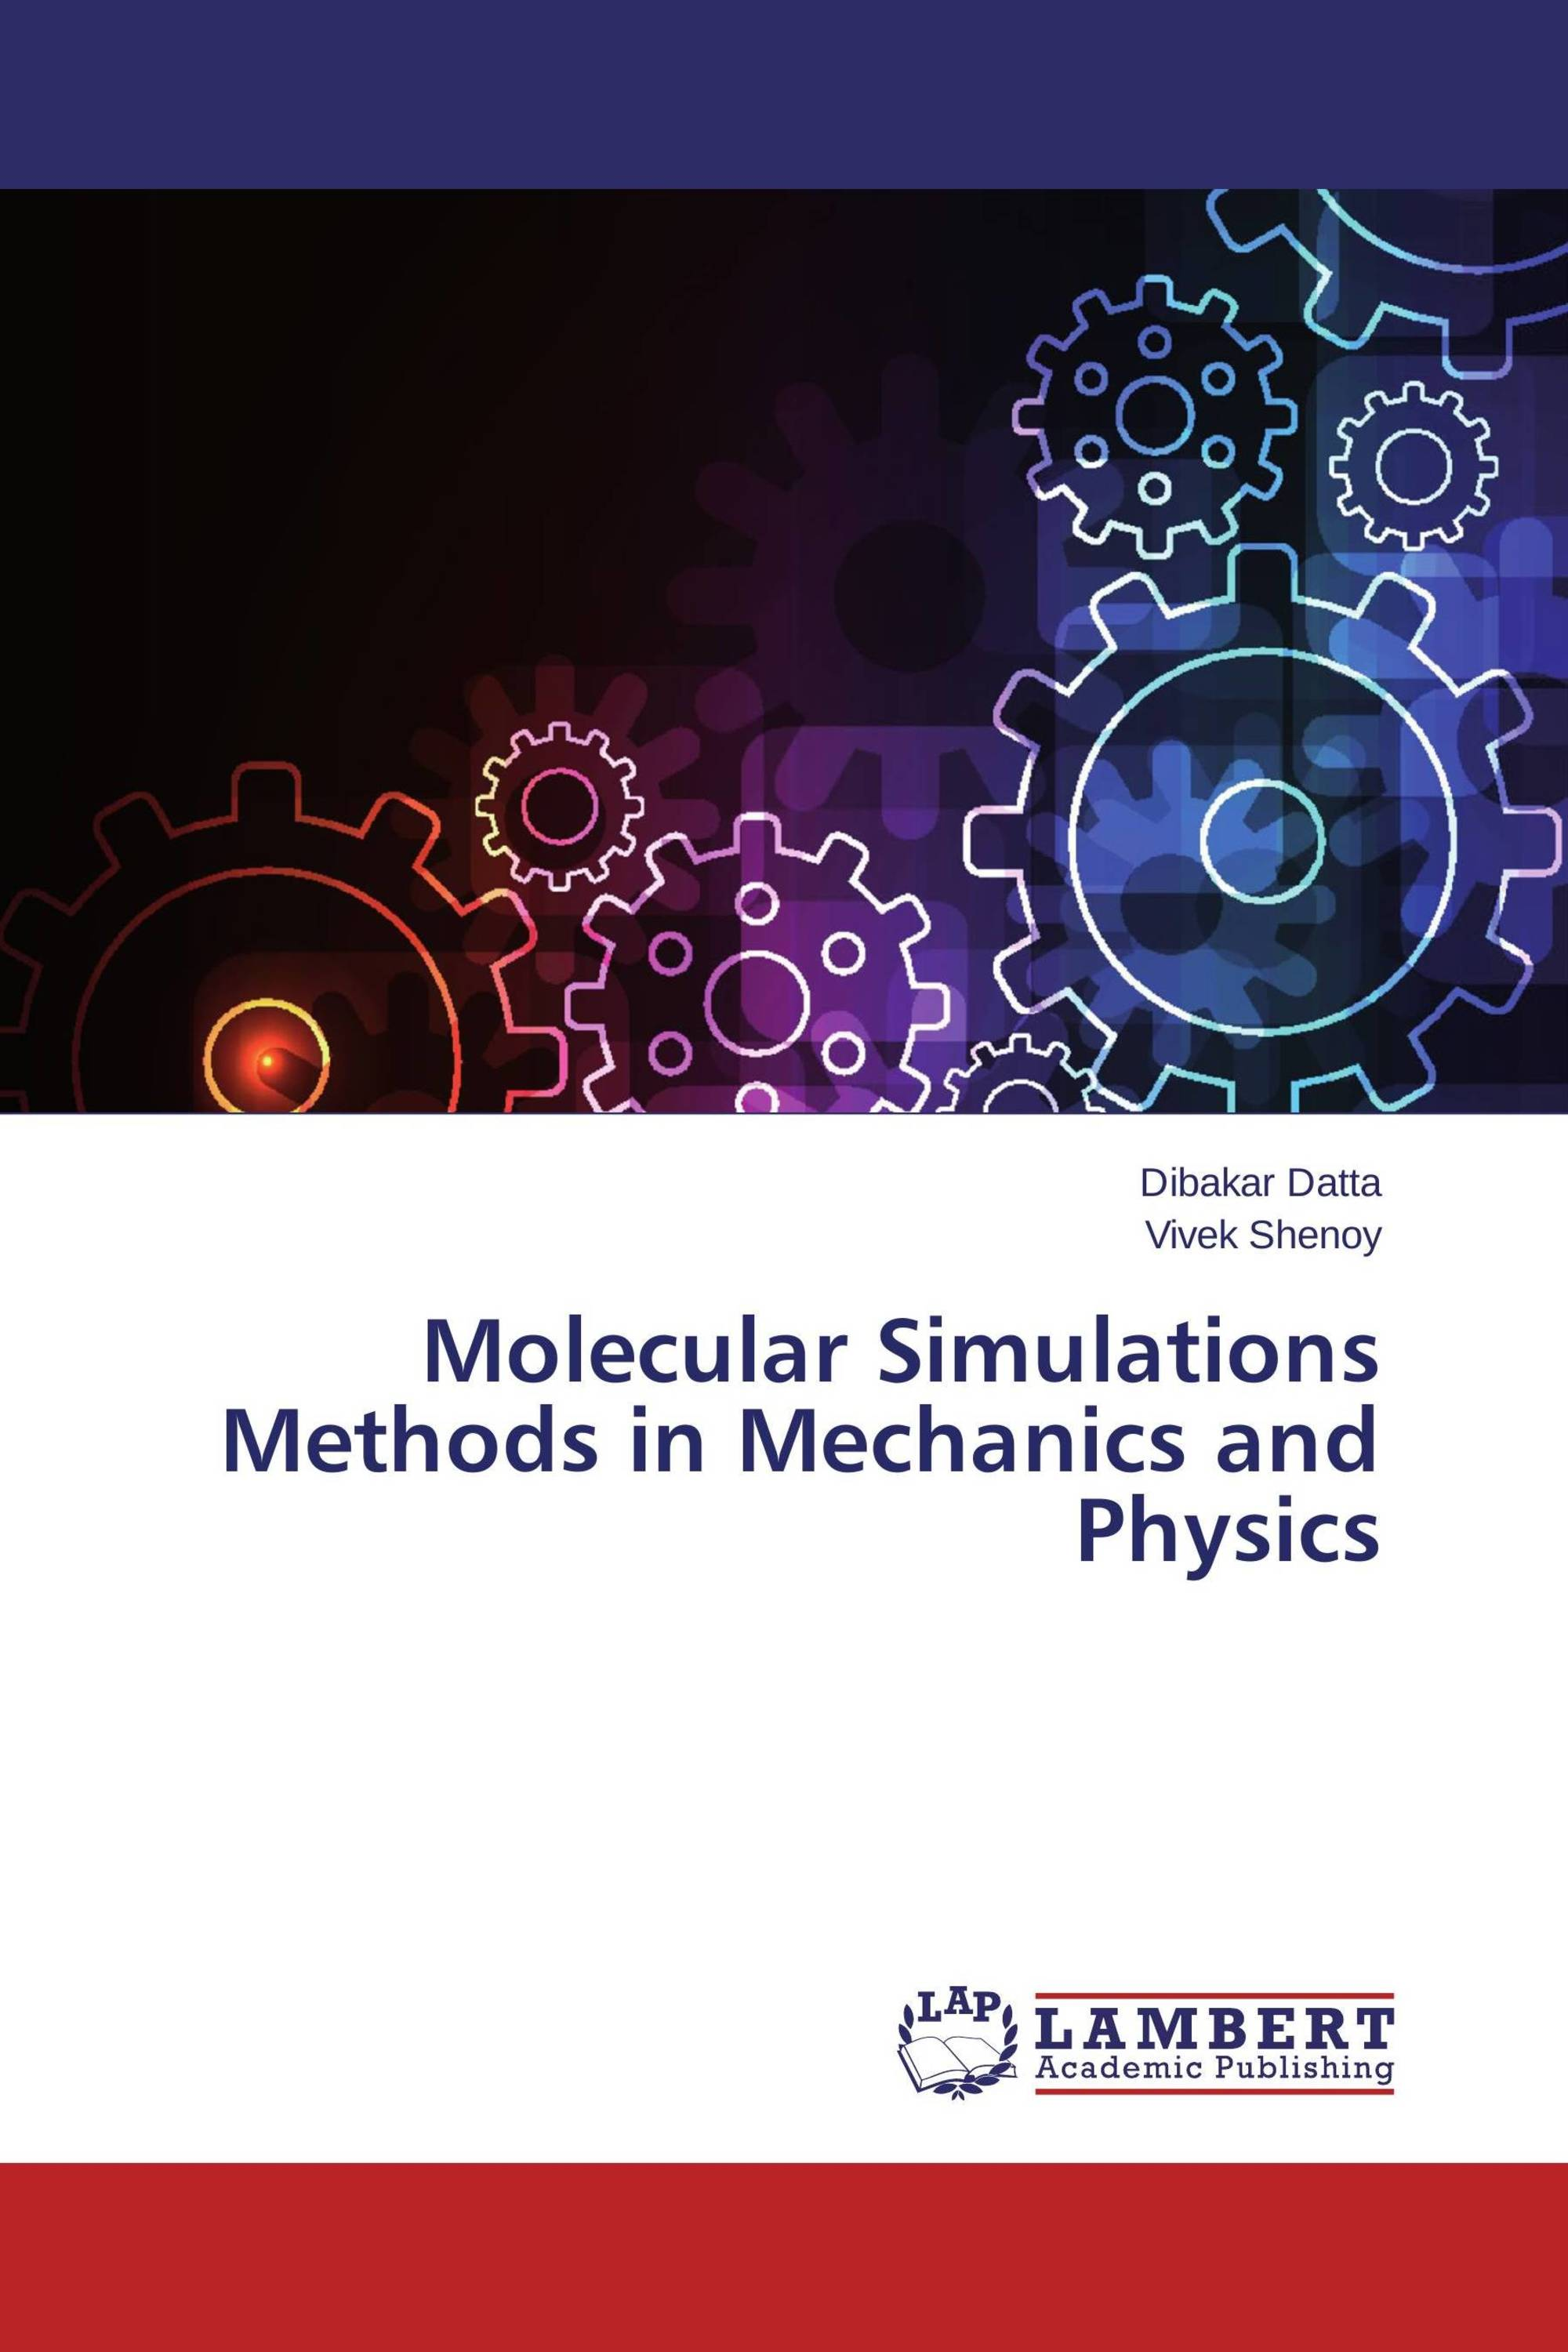 Molecular Simulations Methods in Mechanics and Physics